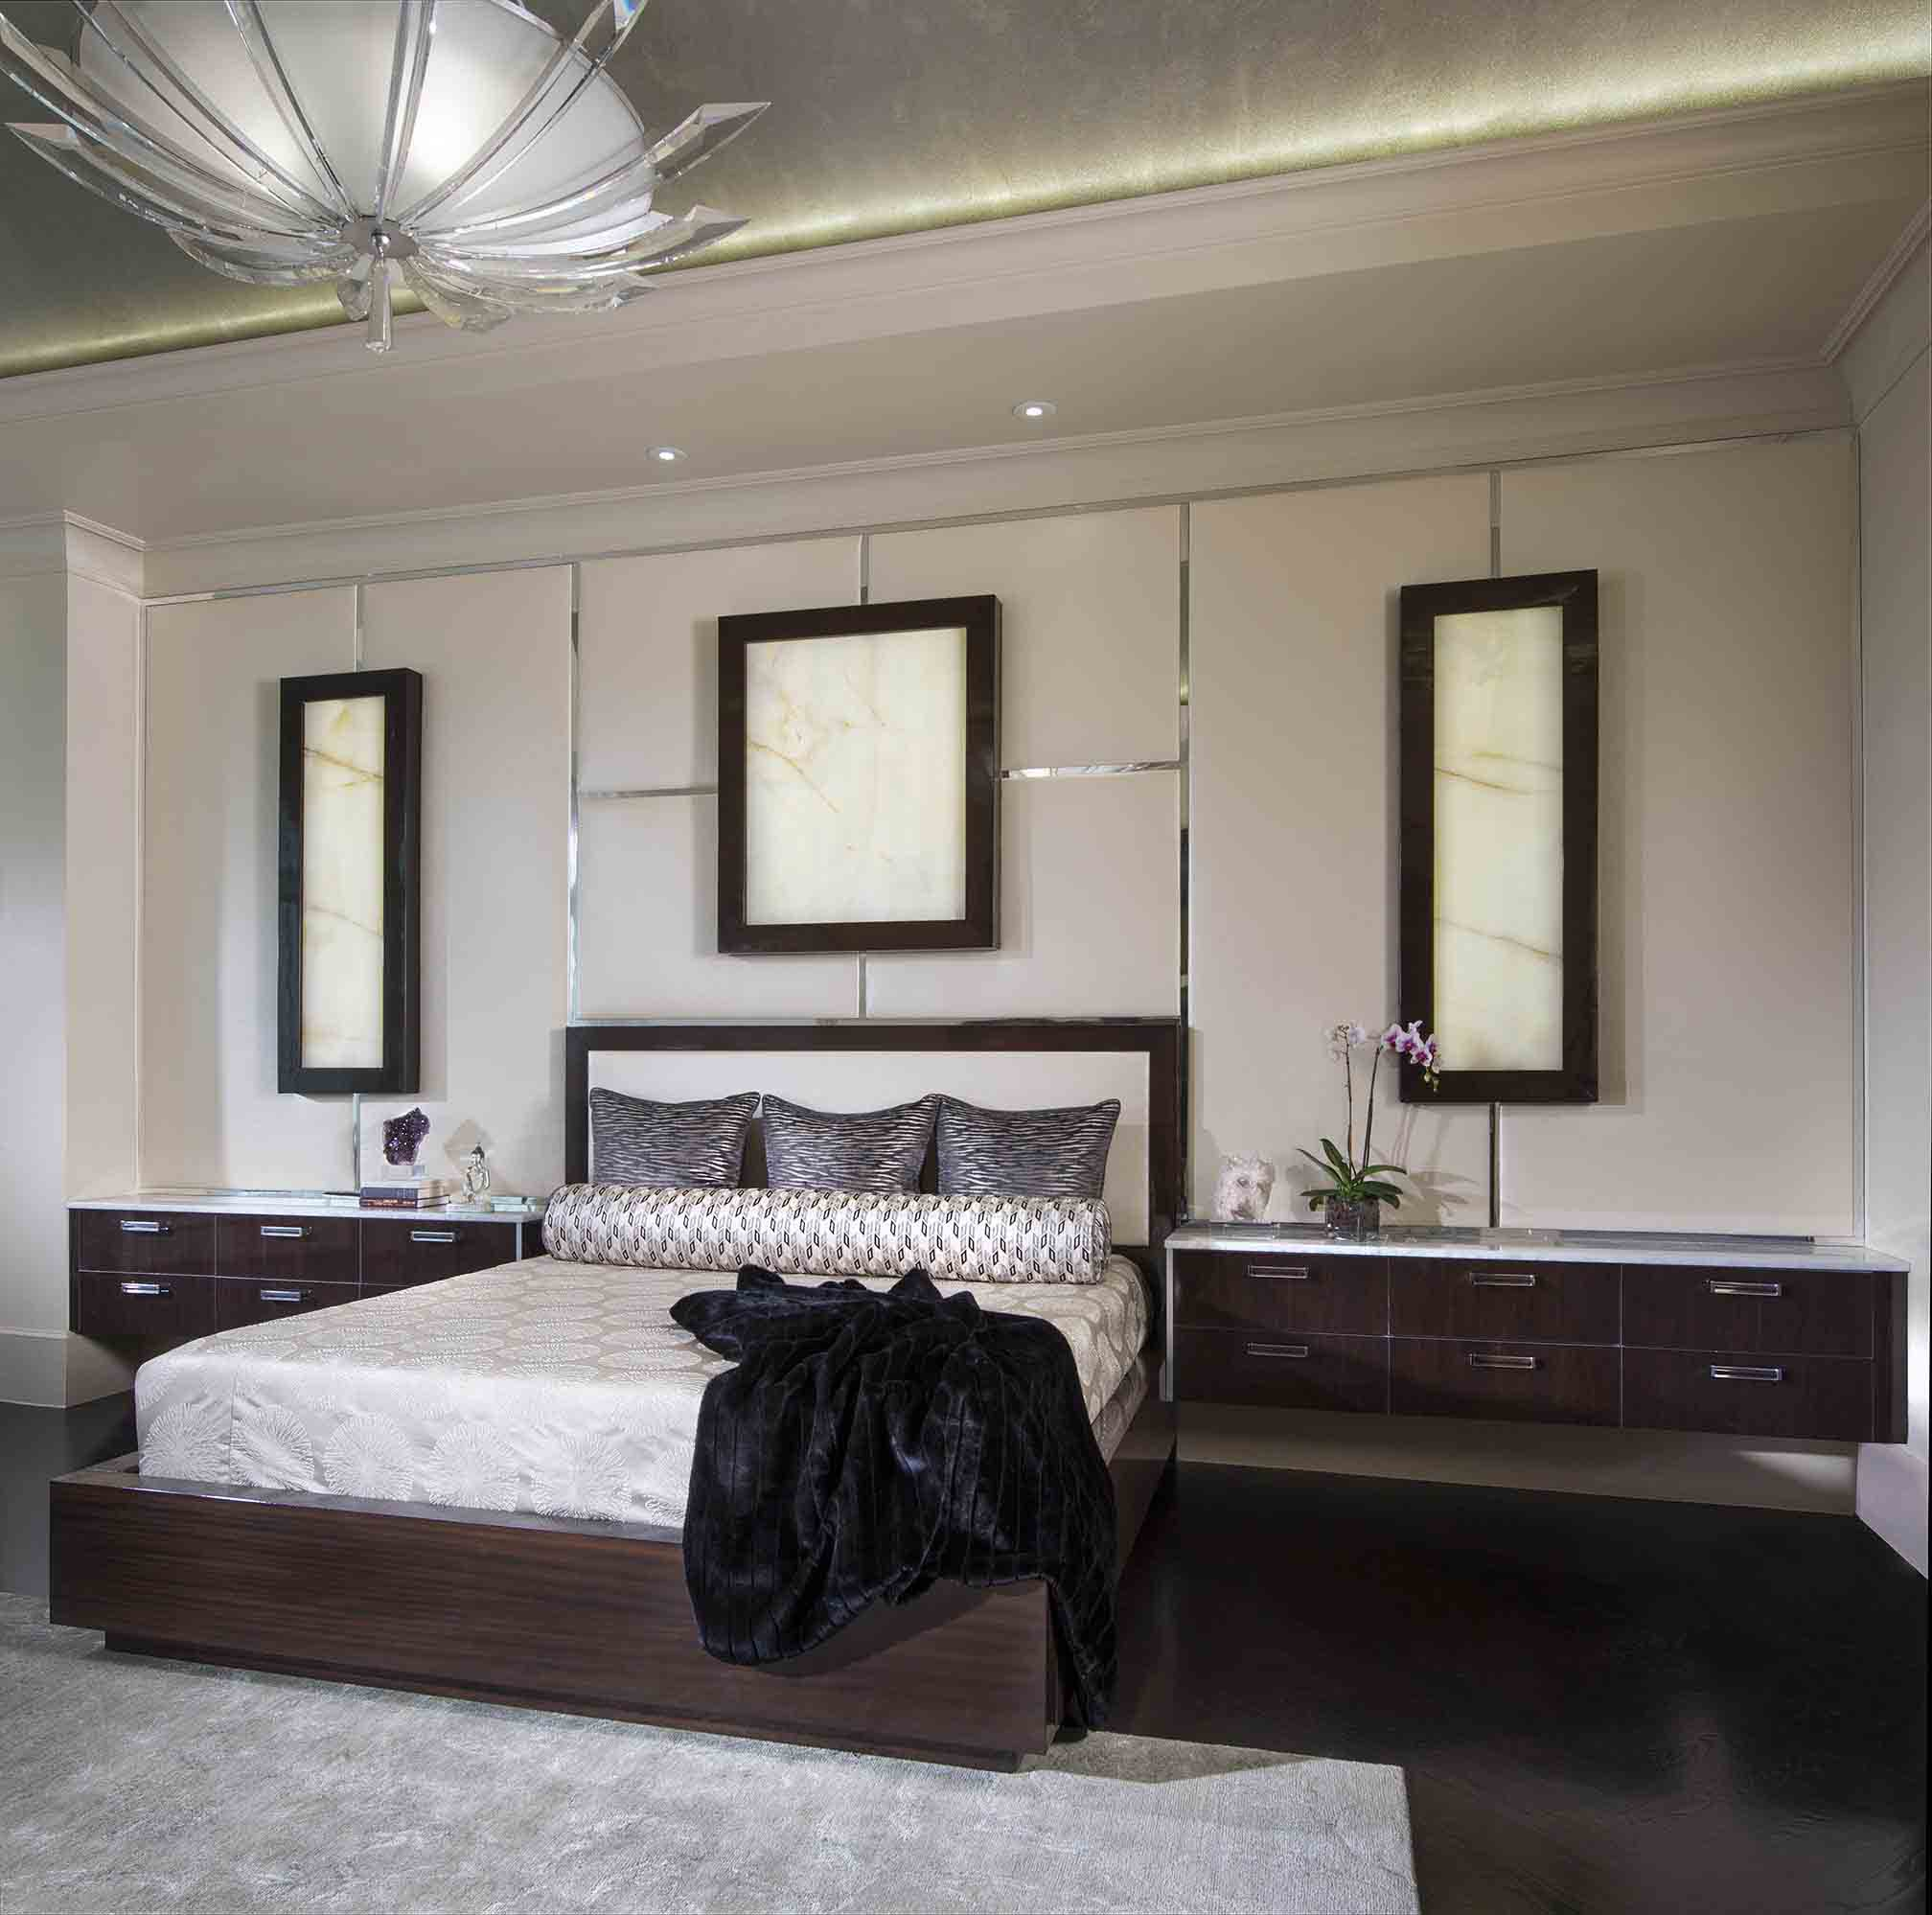 Modern Bedroom With Built In Floating Dressers (Image 10 of 23)